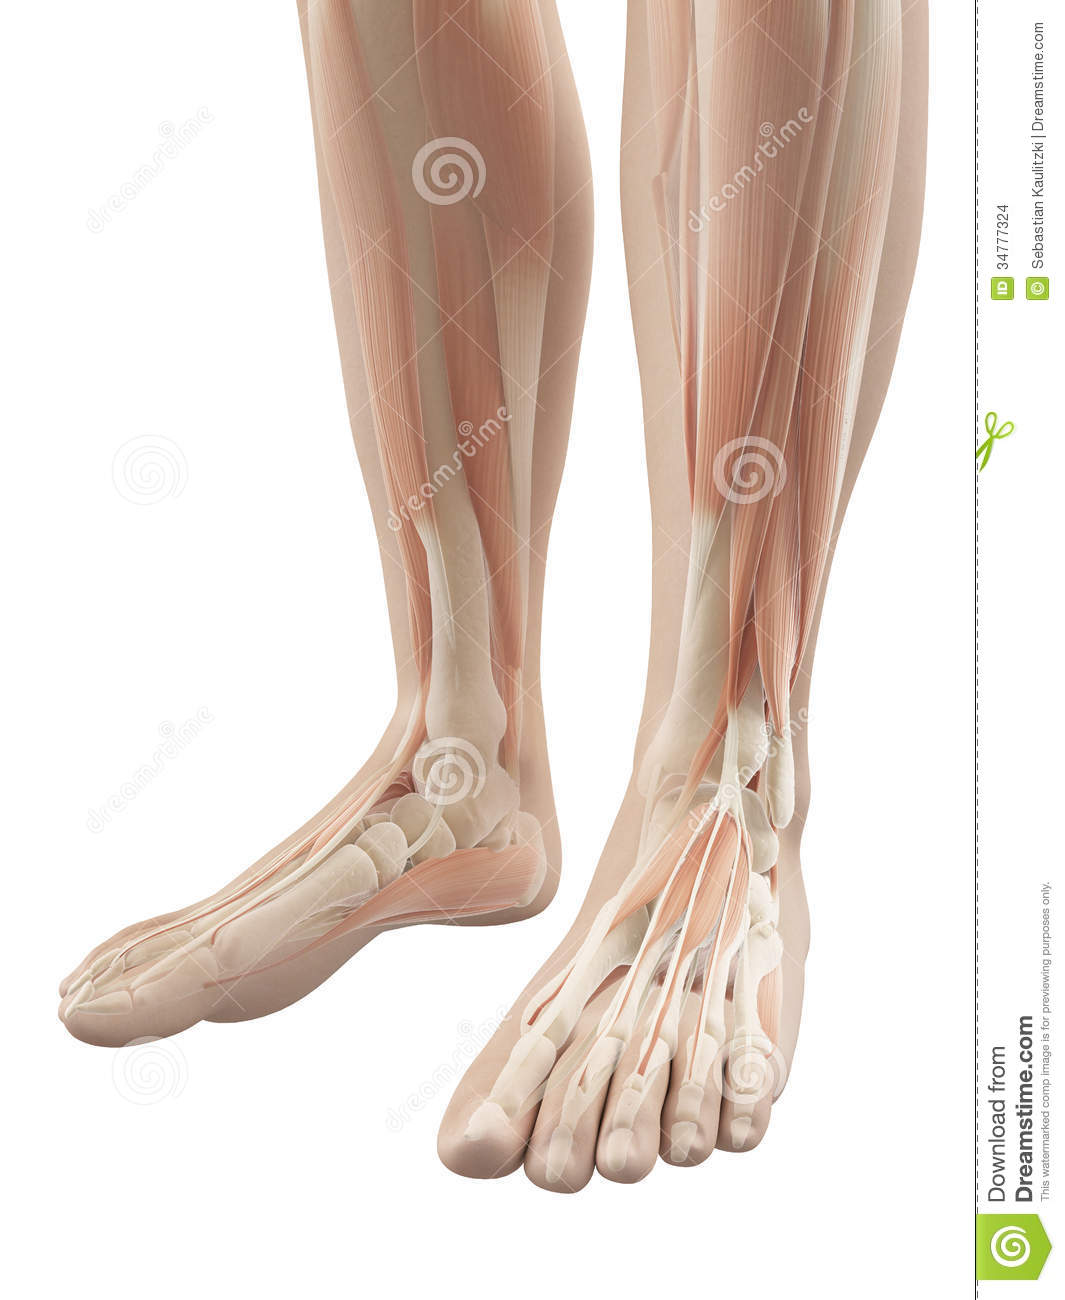 Muscles of the feet stock illustration. Illustration of skin - 34777324